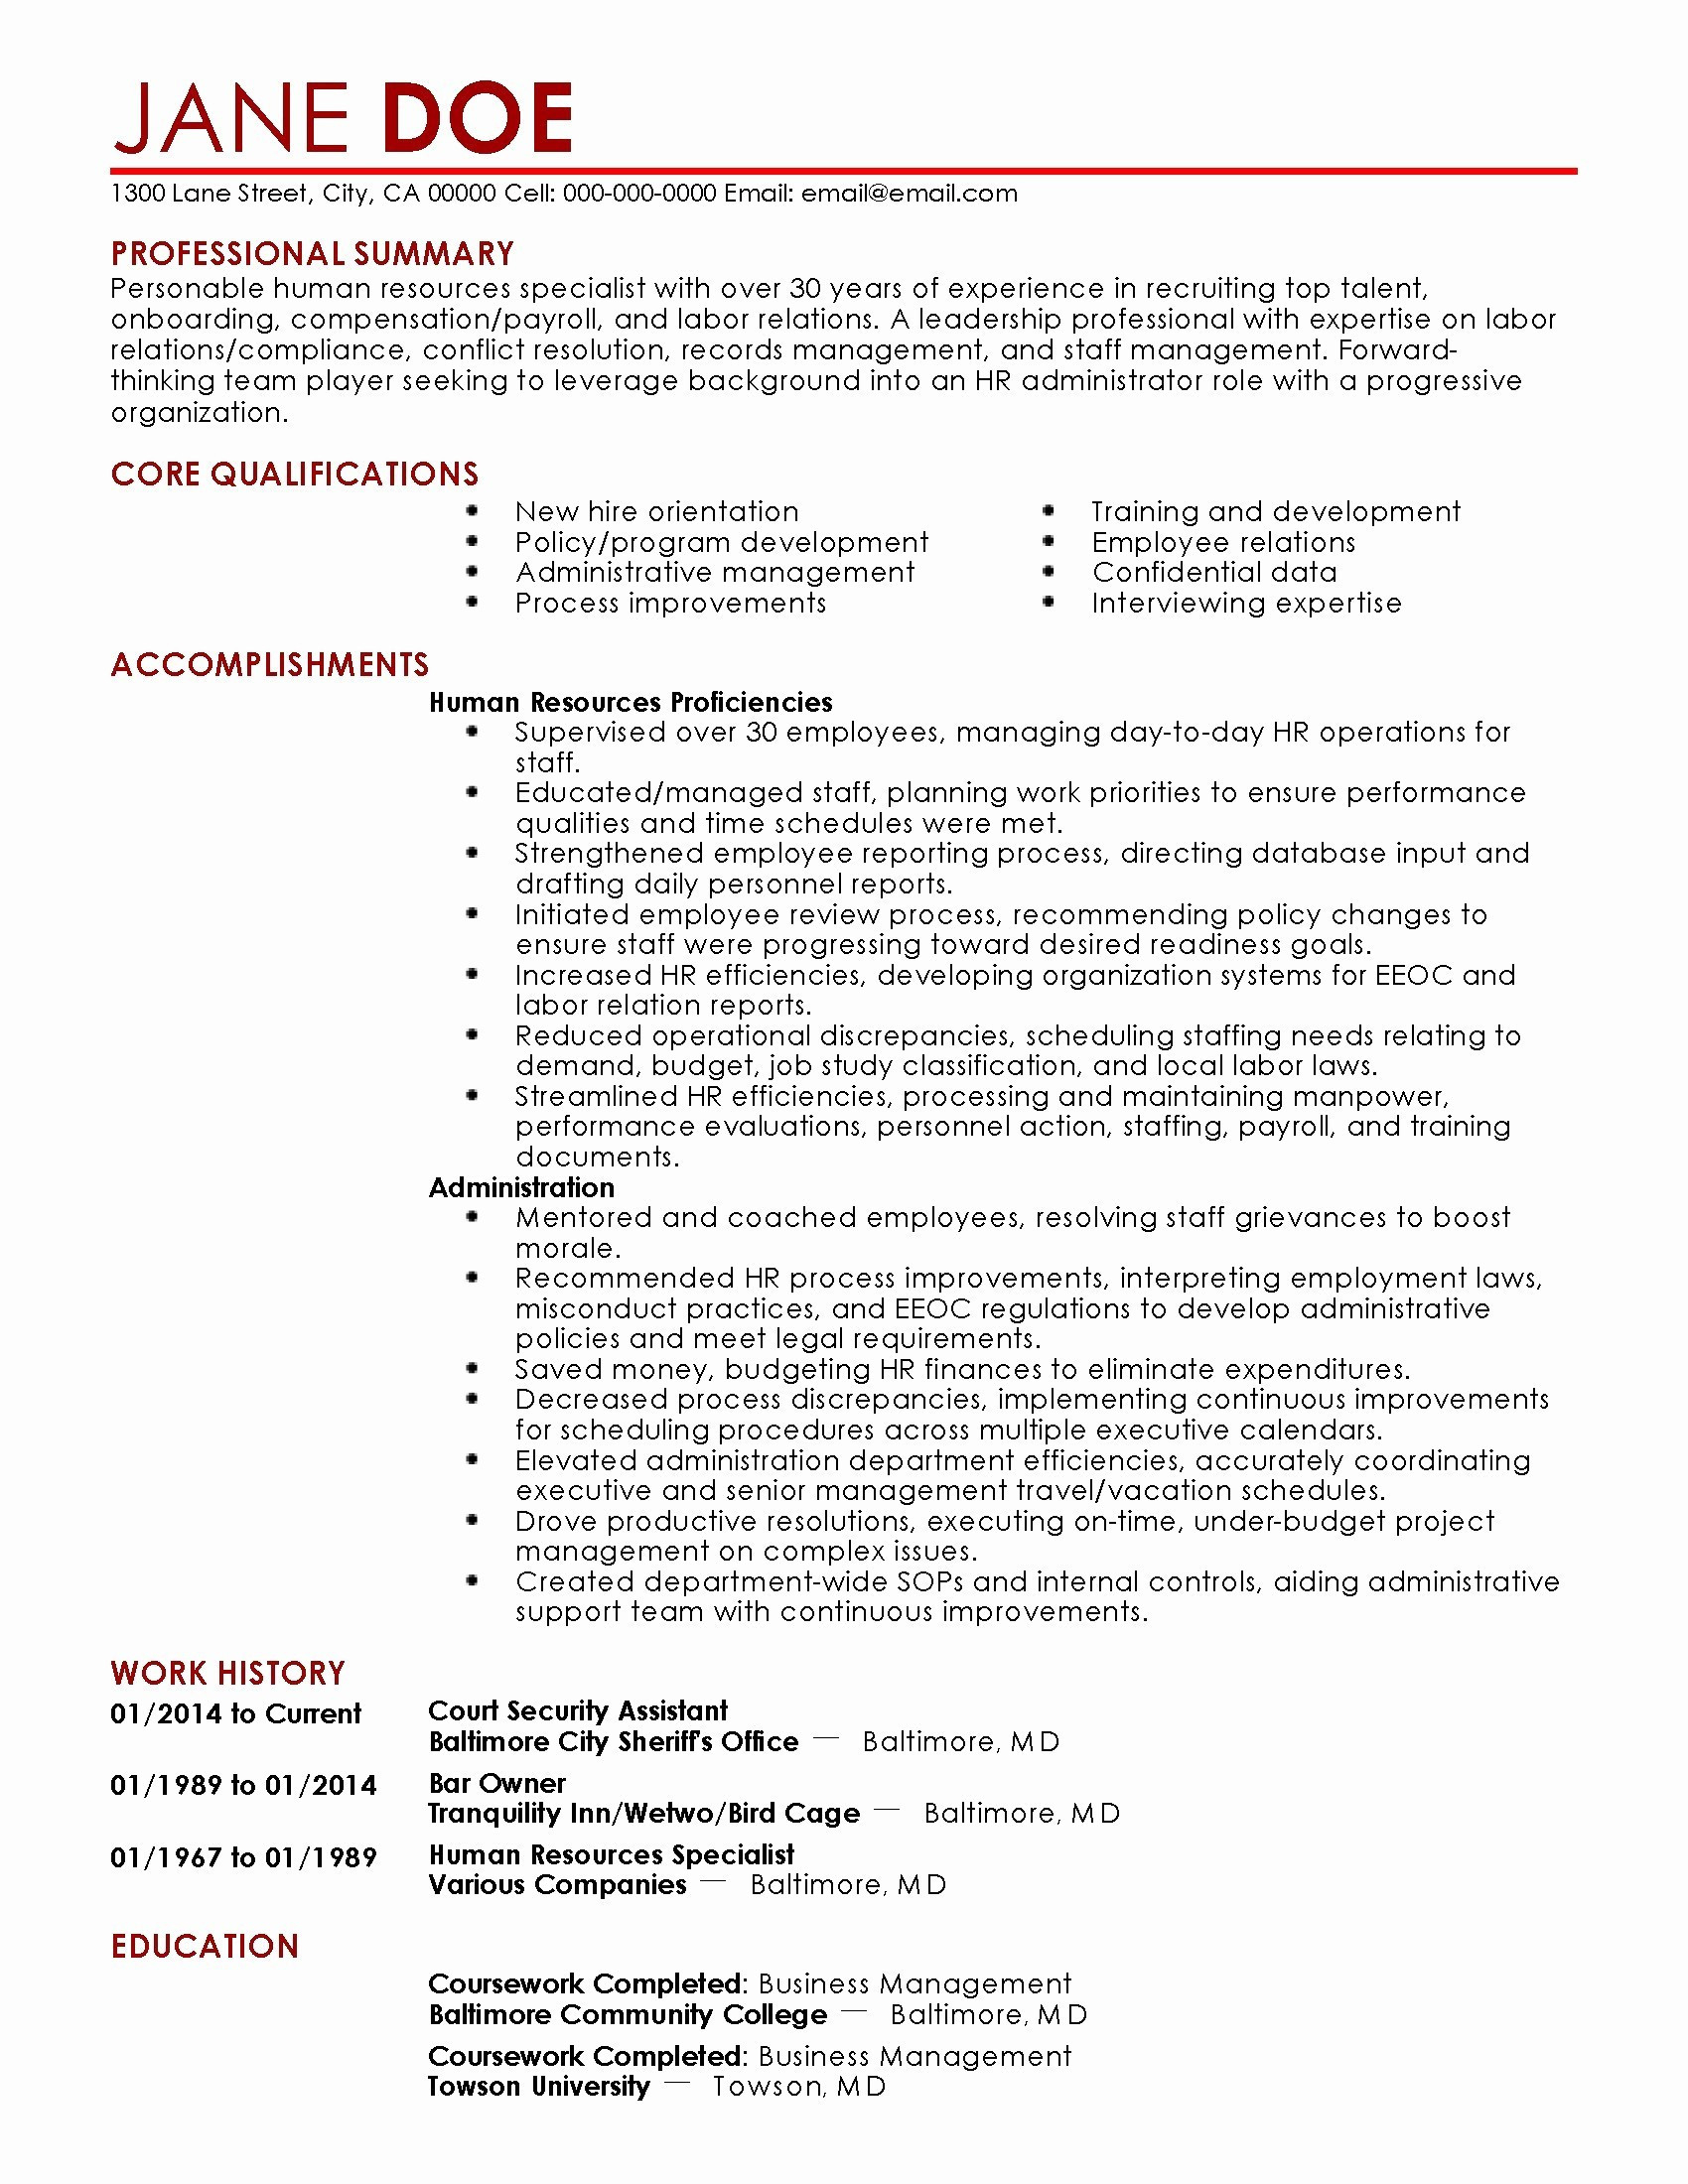 Dental assistant Resume Templates - New Dental assistant Resume Templates